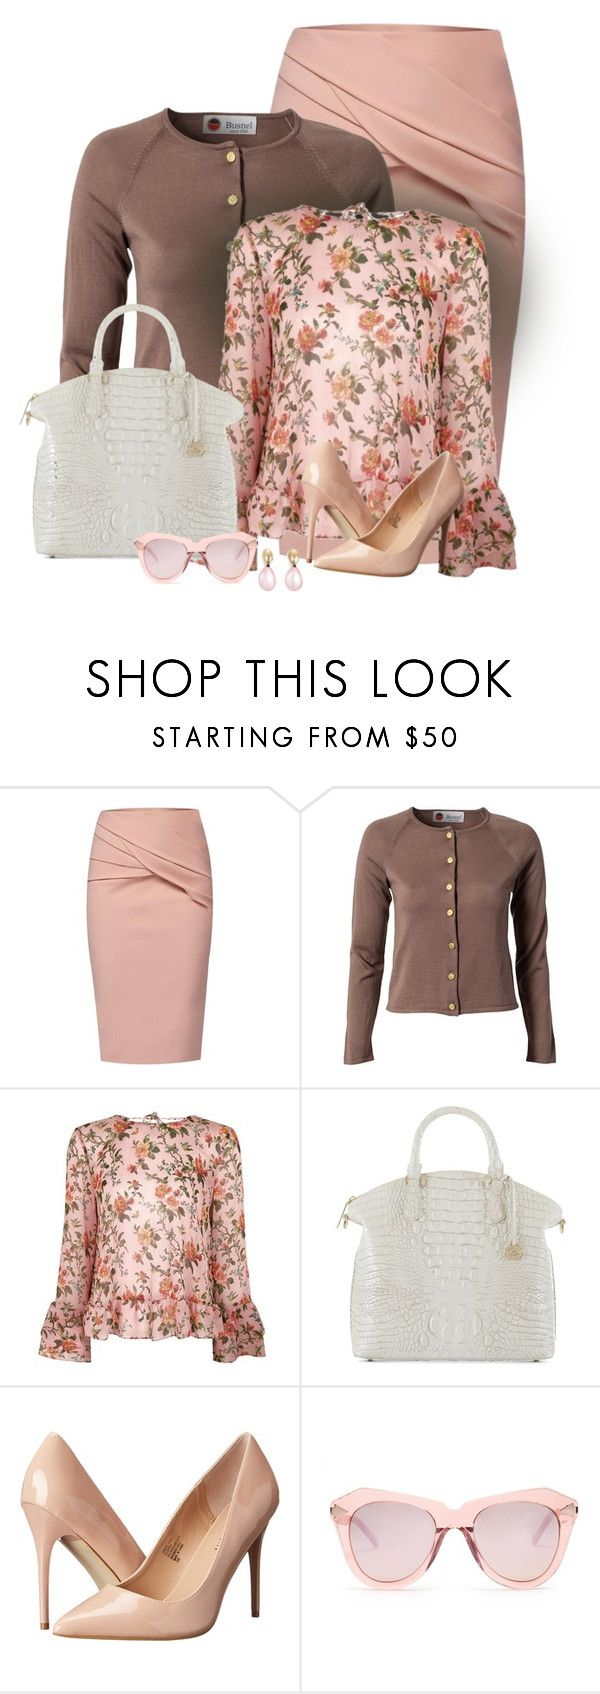 """ooo so classy in Peach!"" by seahag2903 ❤ liked on Polyvore featuring WtR, Busnel, Topshop, Brahmin, Madden Girl, Karen Walker and Monies"